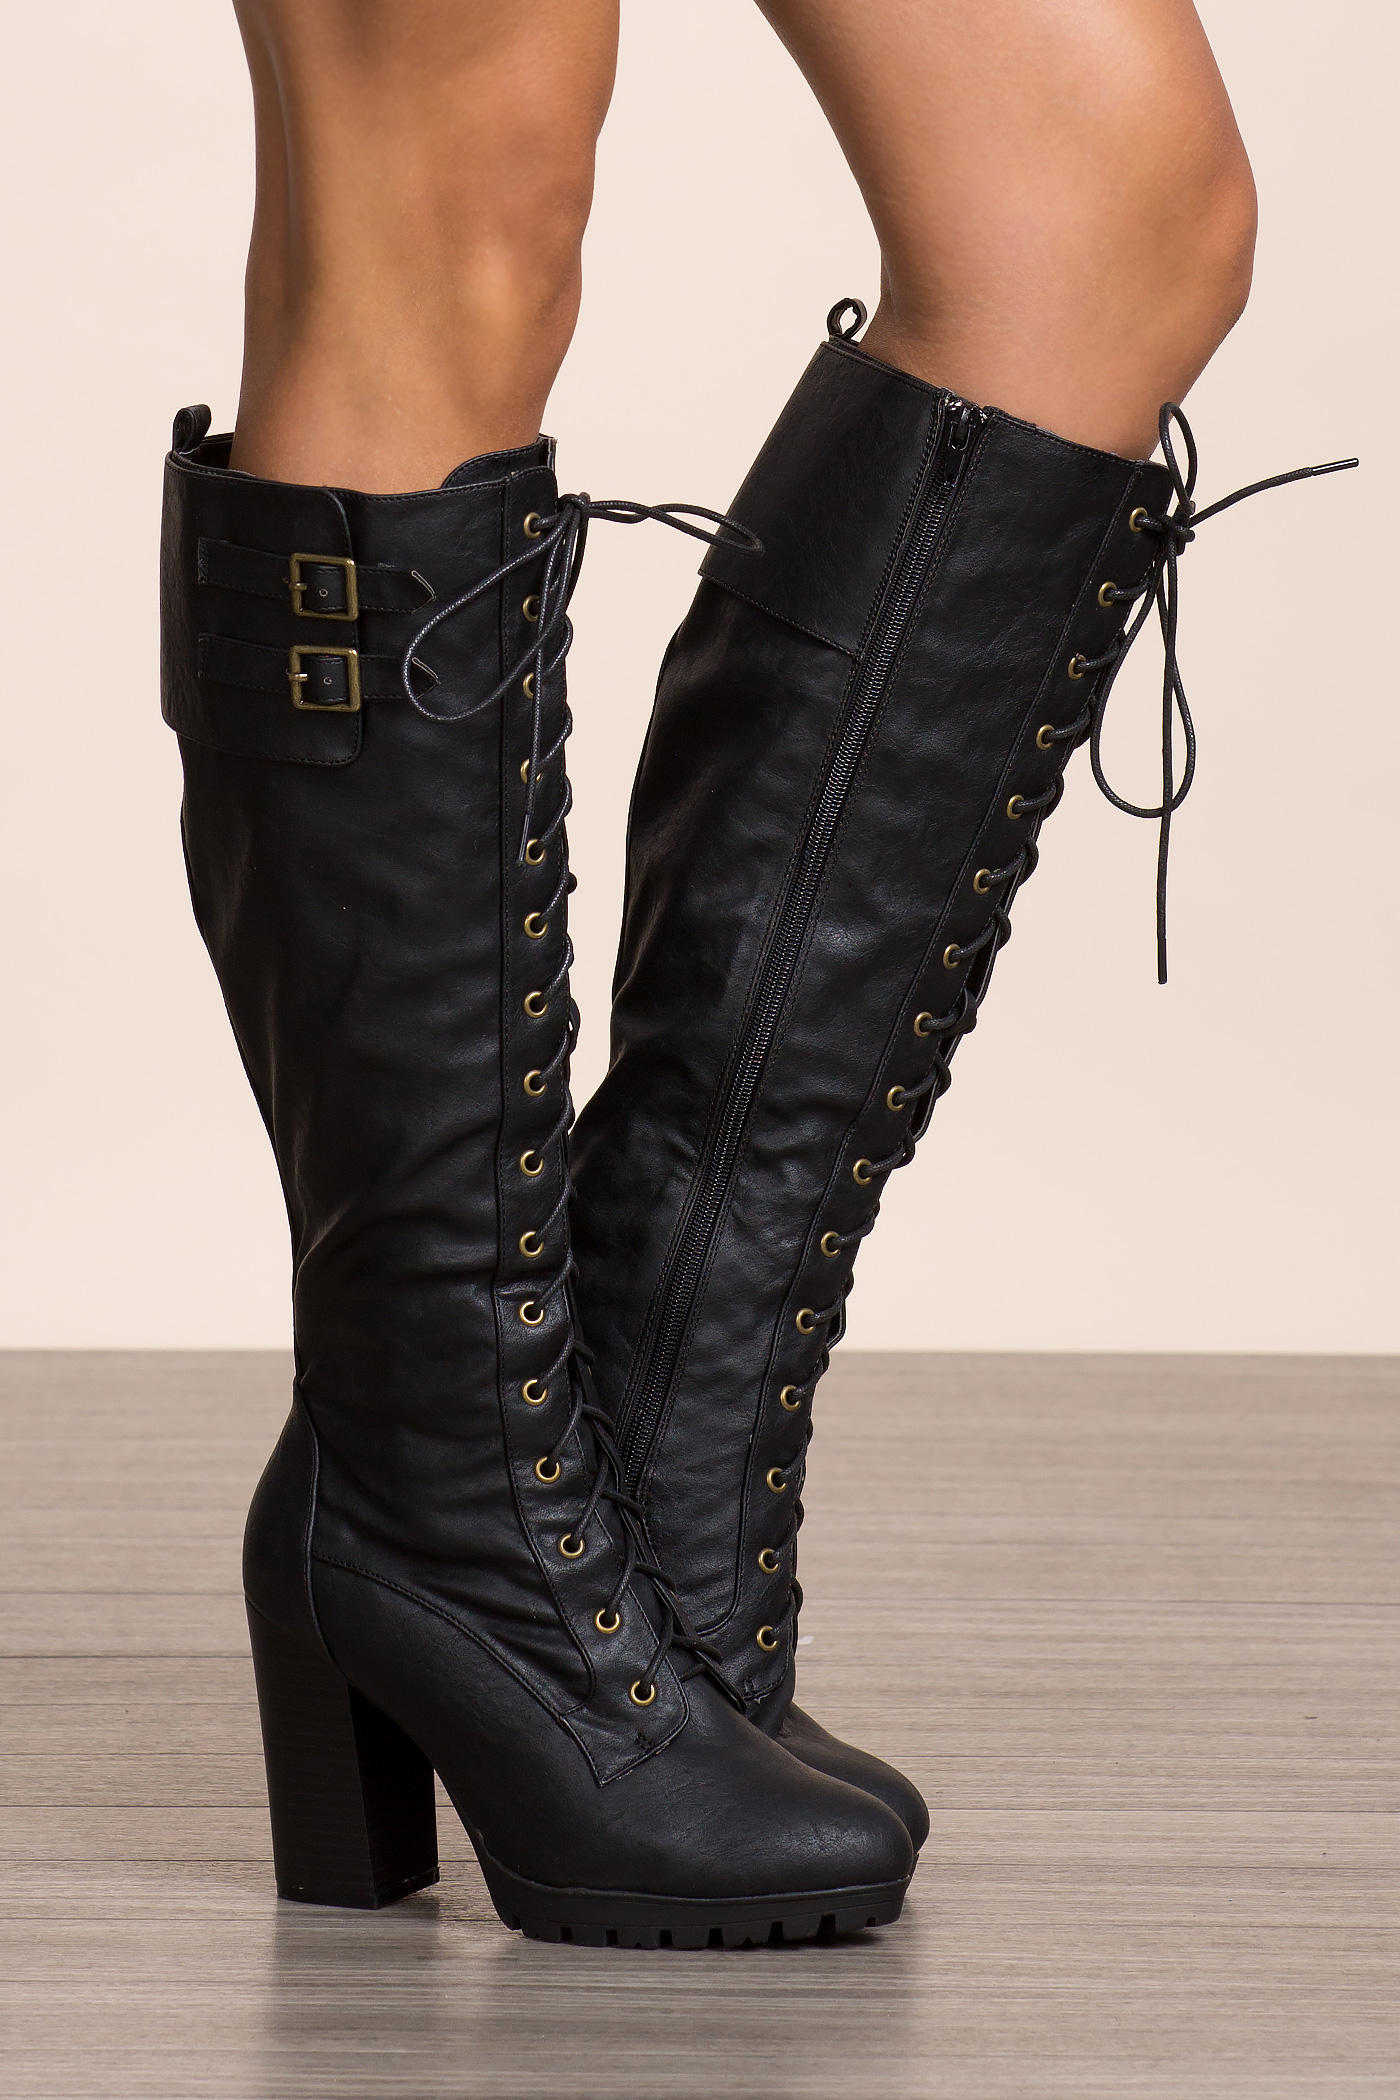 Kimber-11 Bae Watch Lace Up Boot from A GACI ad820eb795b0